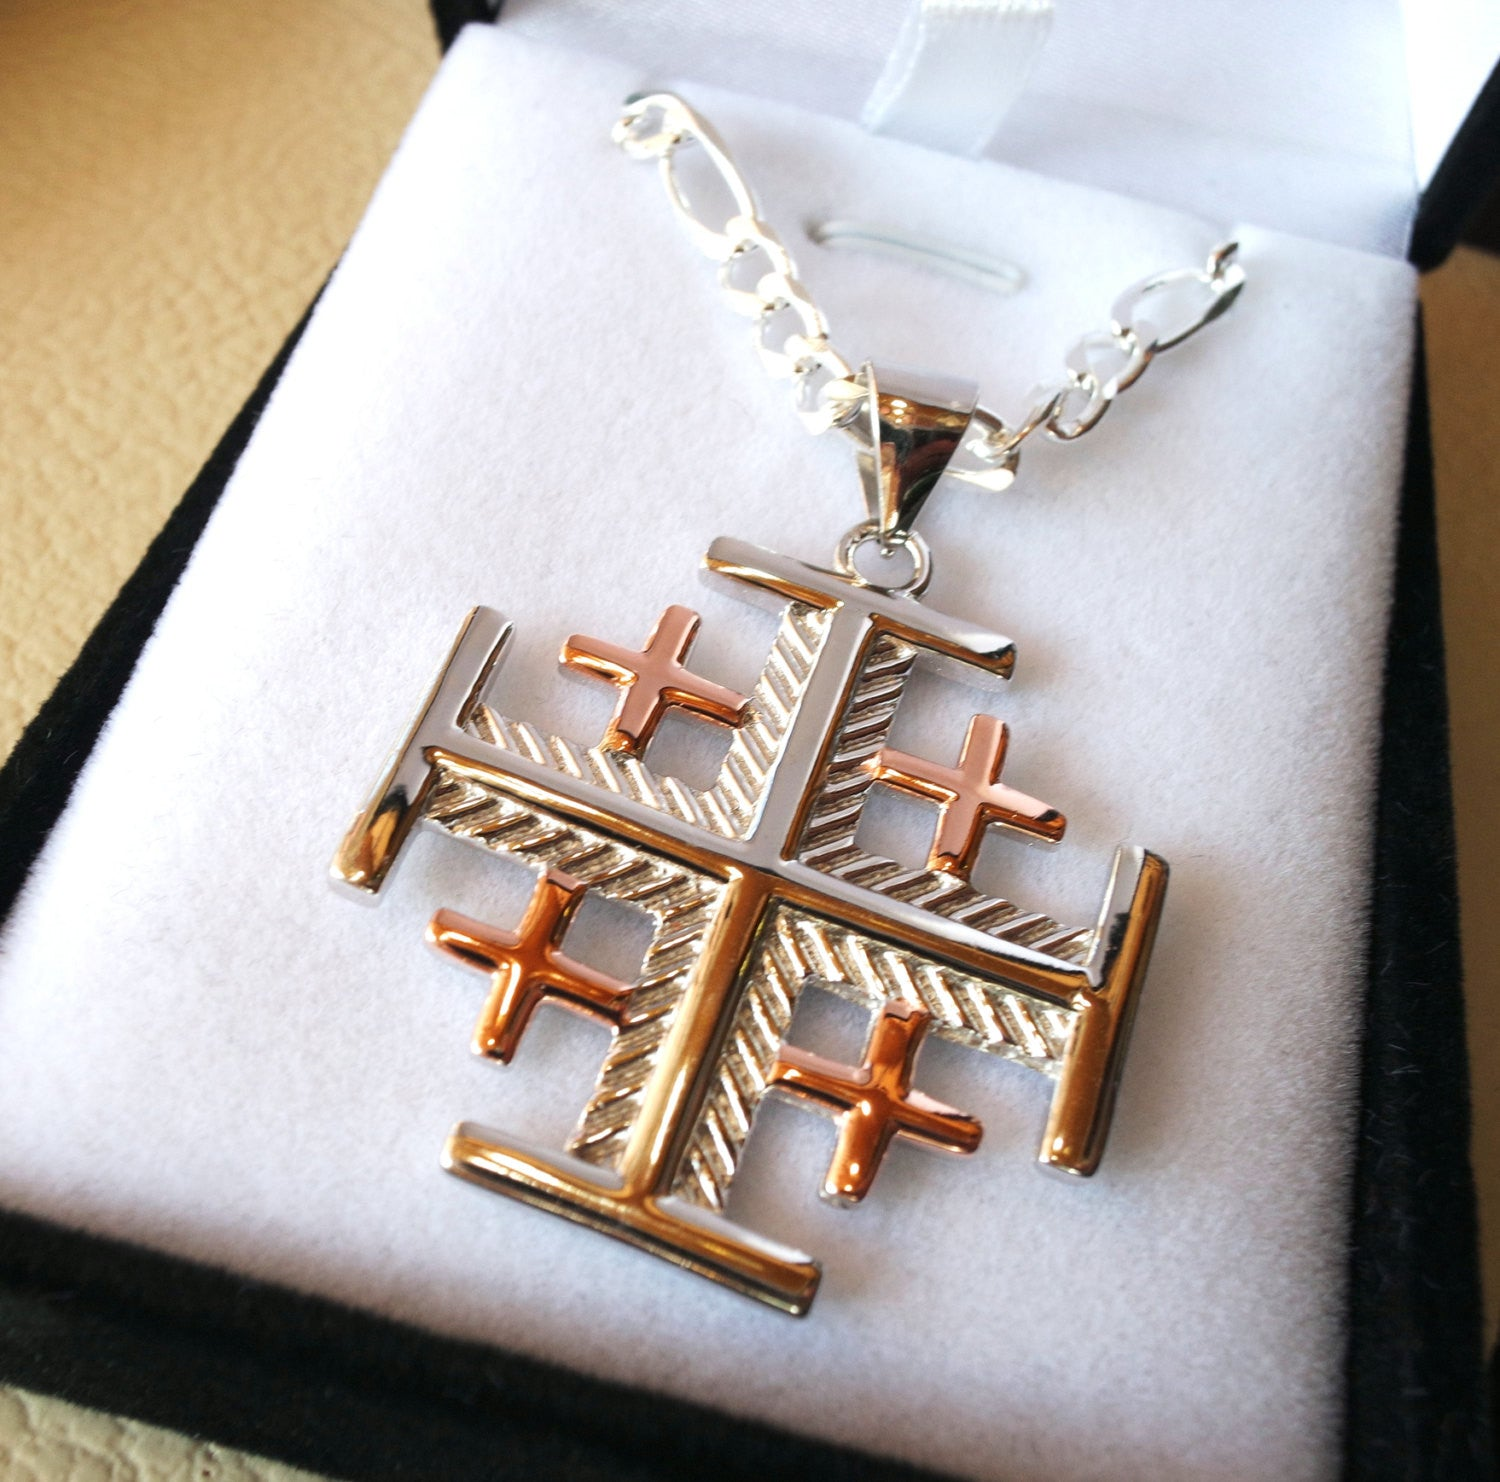 jewellery original silver crusaders cross large pendant ornate auction jerusalem secondhand beautiful auctions